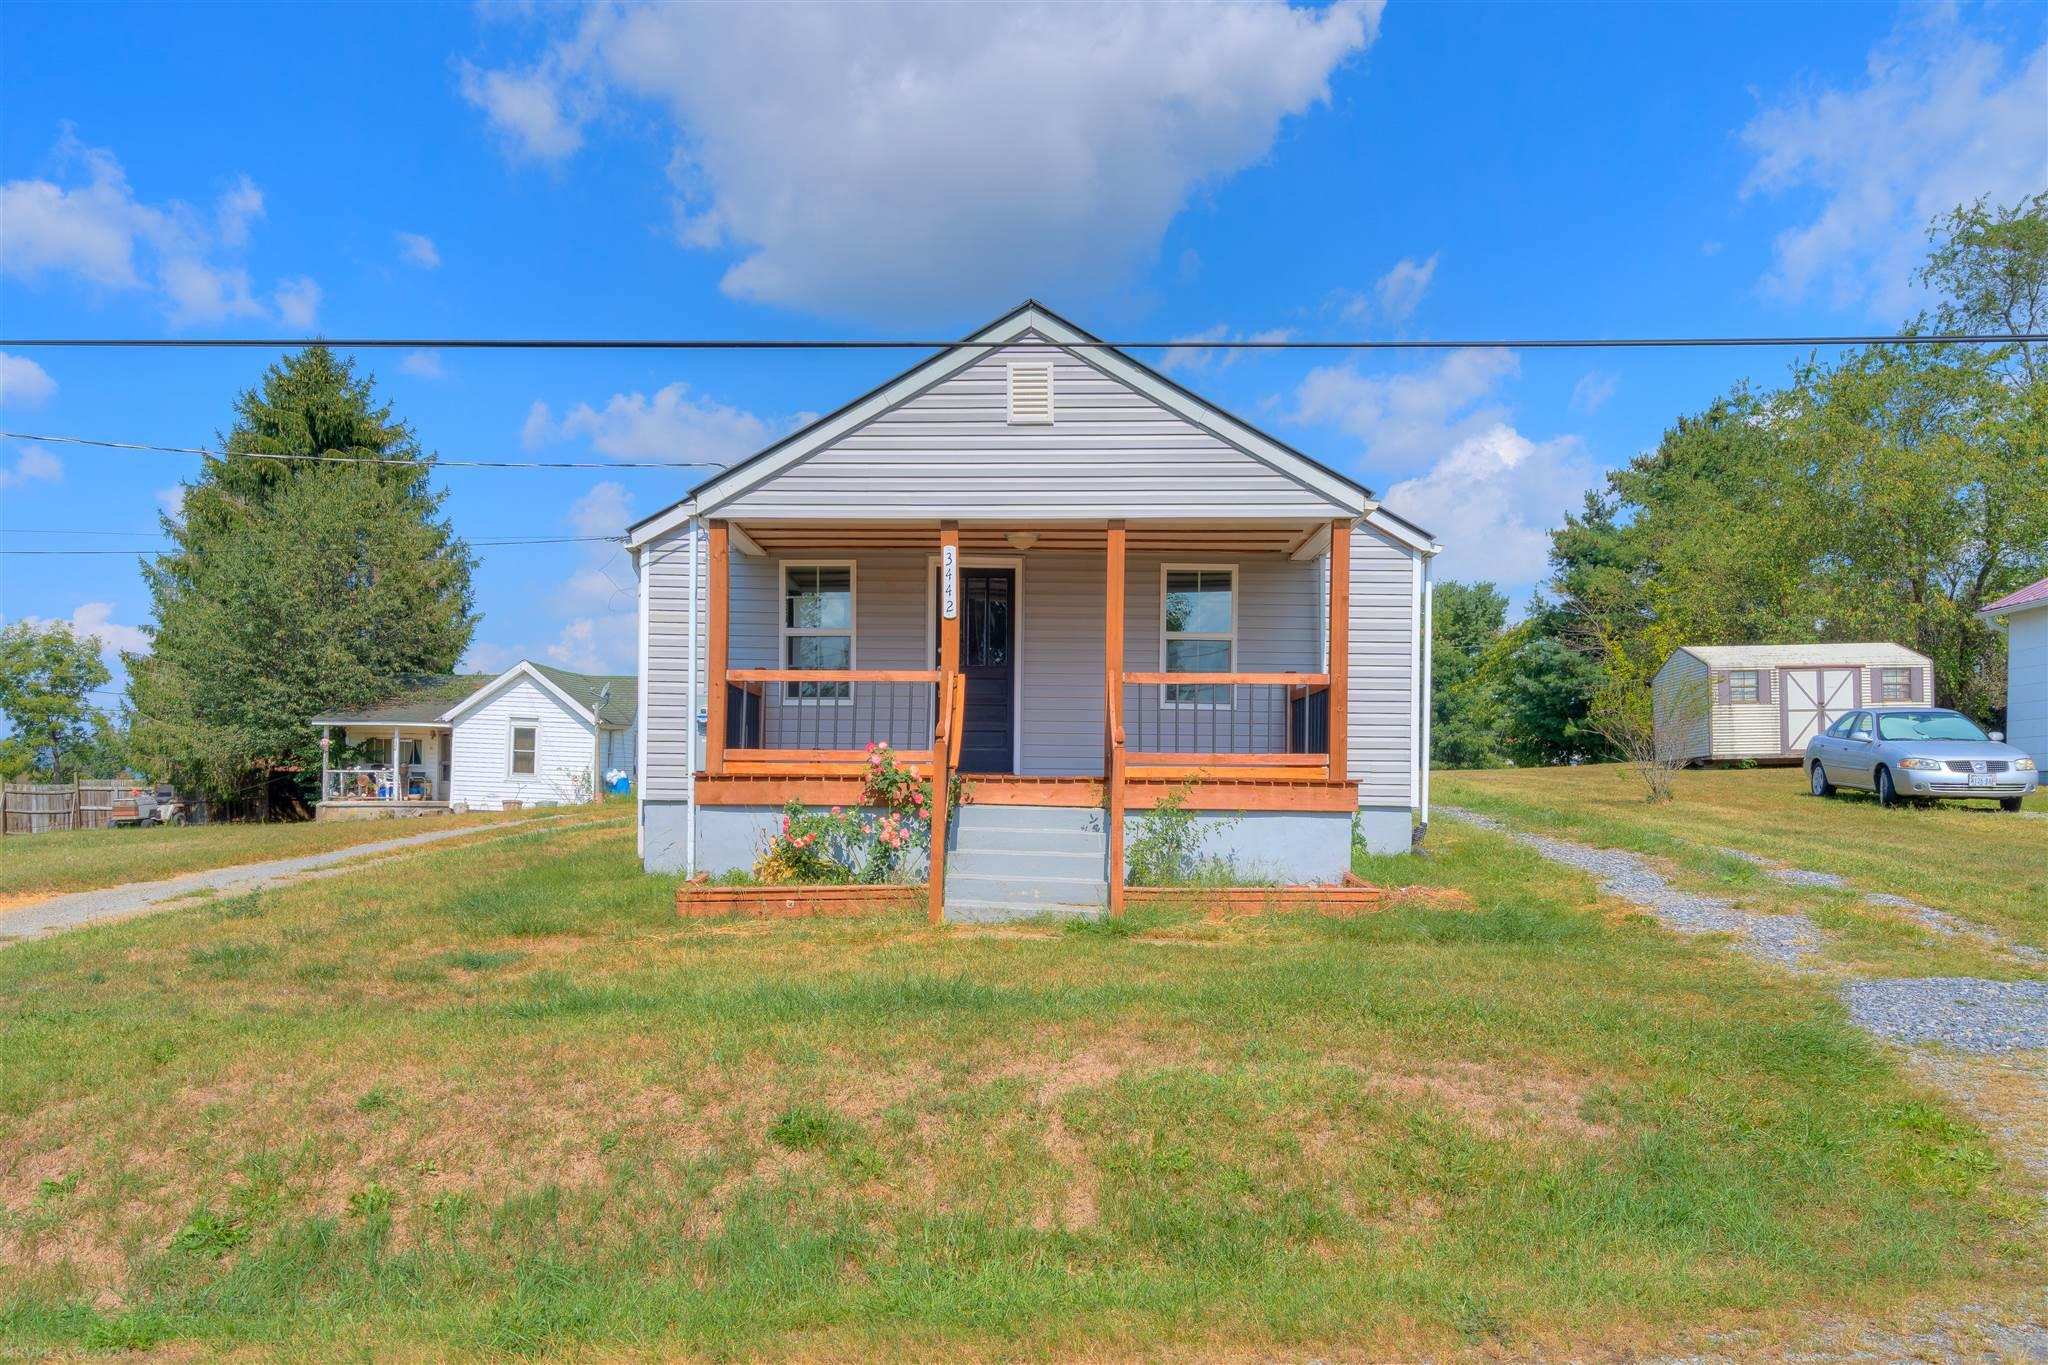 This cute 3 bedroom home has been totally redone! Located in a quiet neighborhood in Robinson Tract, you can walk up to the completely covered and brand new front porch, and enter right into the living room. Crown molding, fresh paint, new fixtures throughout. New laminate floors throughout. New Washer & Dryer, Ref, Range, Microwave all convey. Bright light through new windows in every room. Lots of closet space in each bedroom, and plenty of cabinets in the kitchen. New hot water heater, new HVAC heat pump, new vinyl siding, new roof, all new electrical and plumbing. One large outdoor storage area with shelving; two other large out buildings for storage. This is a wonderful starter home for a new family, or maybe even a sweet soul or couple looking to downsize. See it today!!